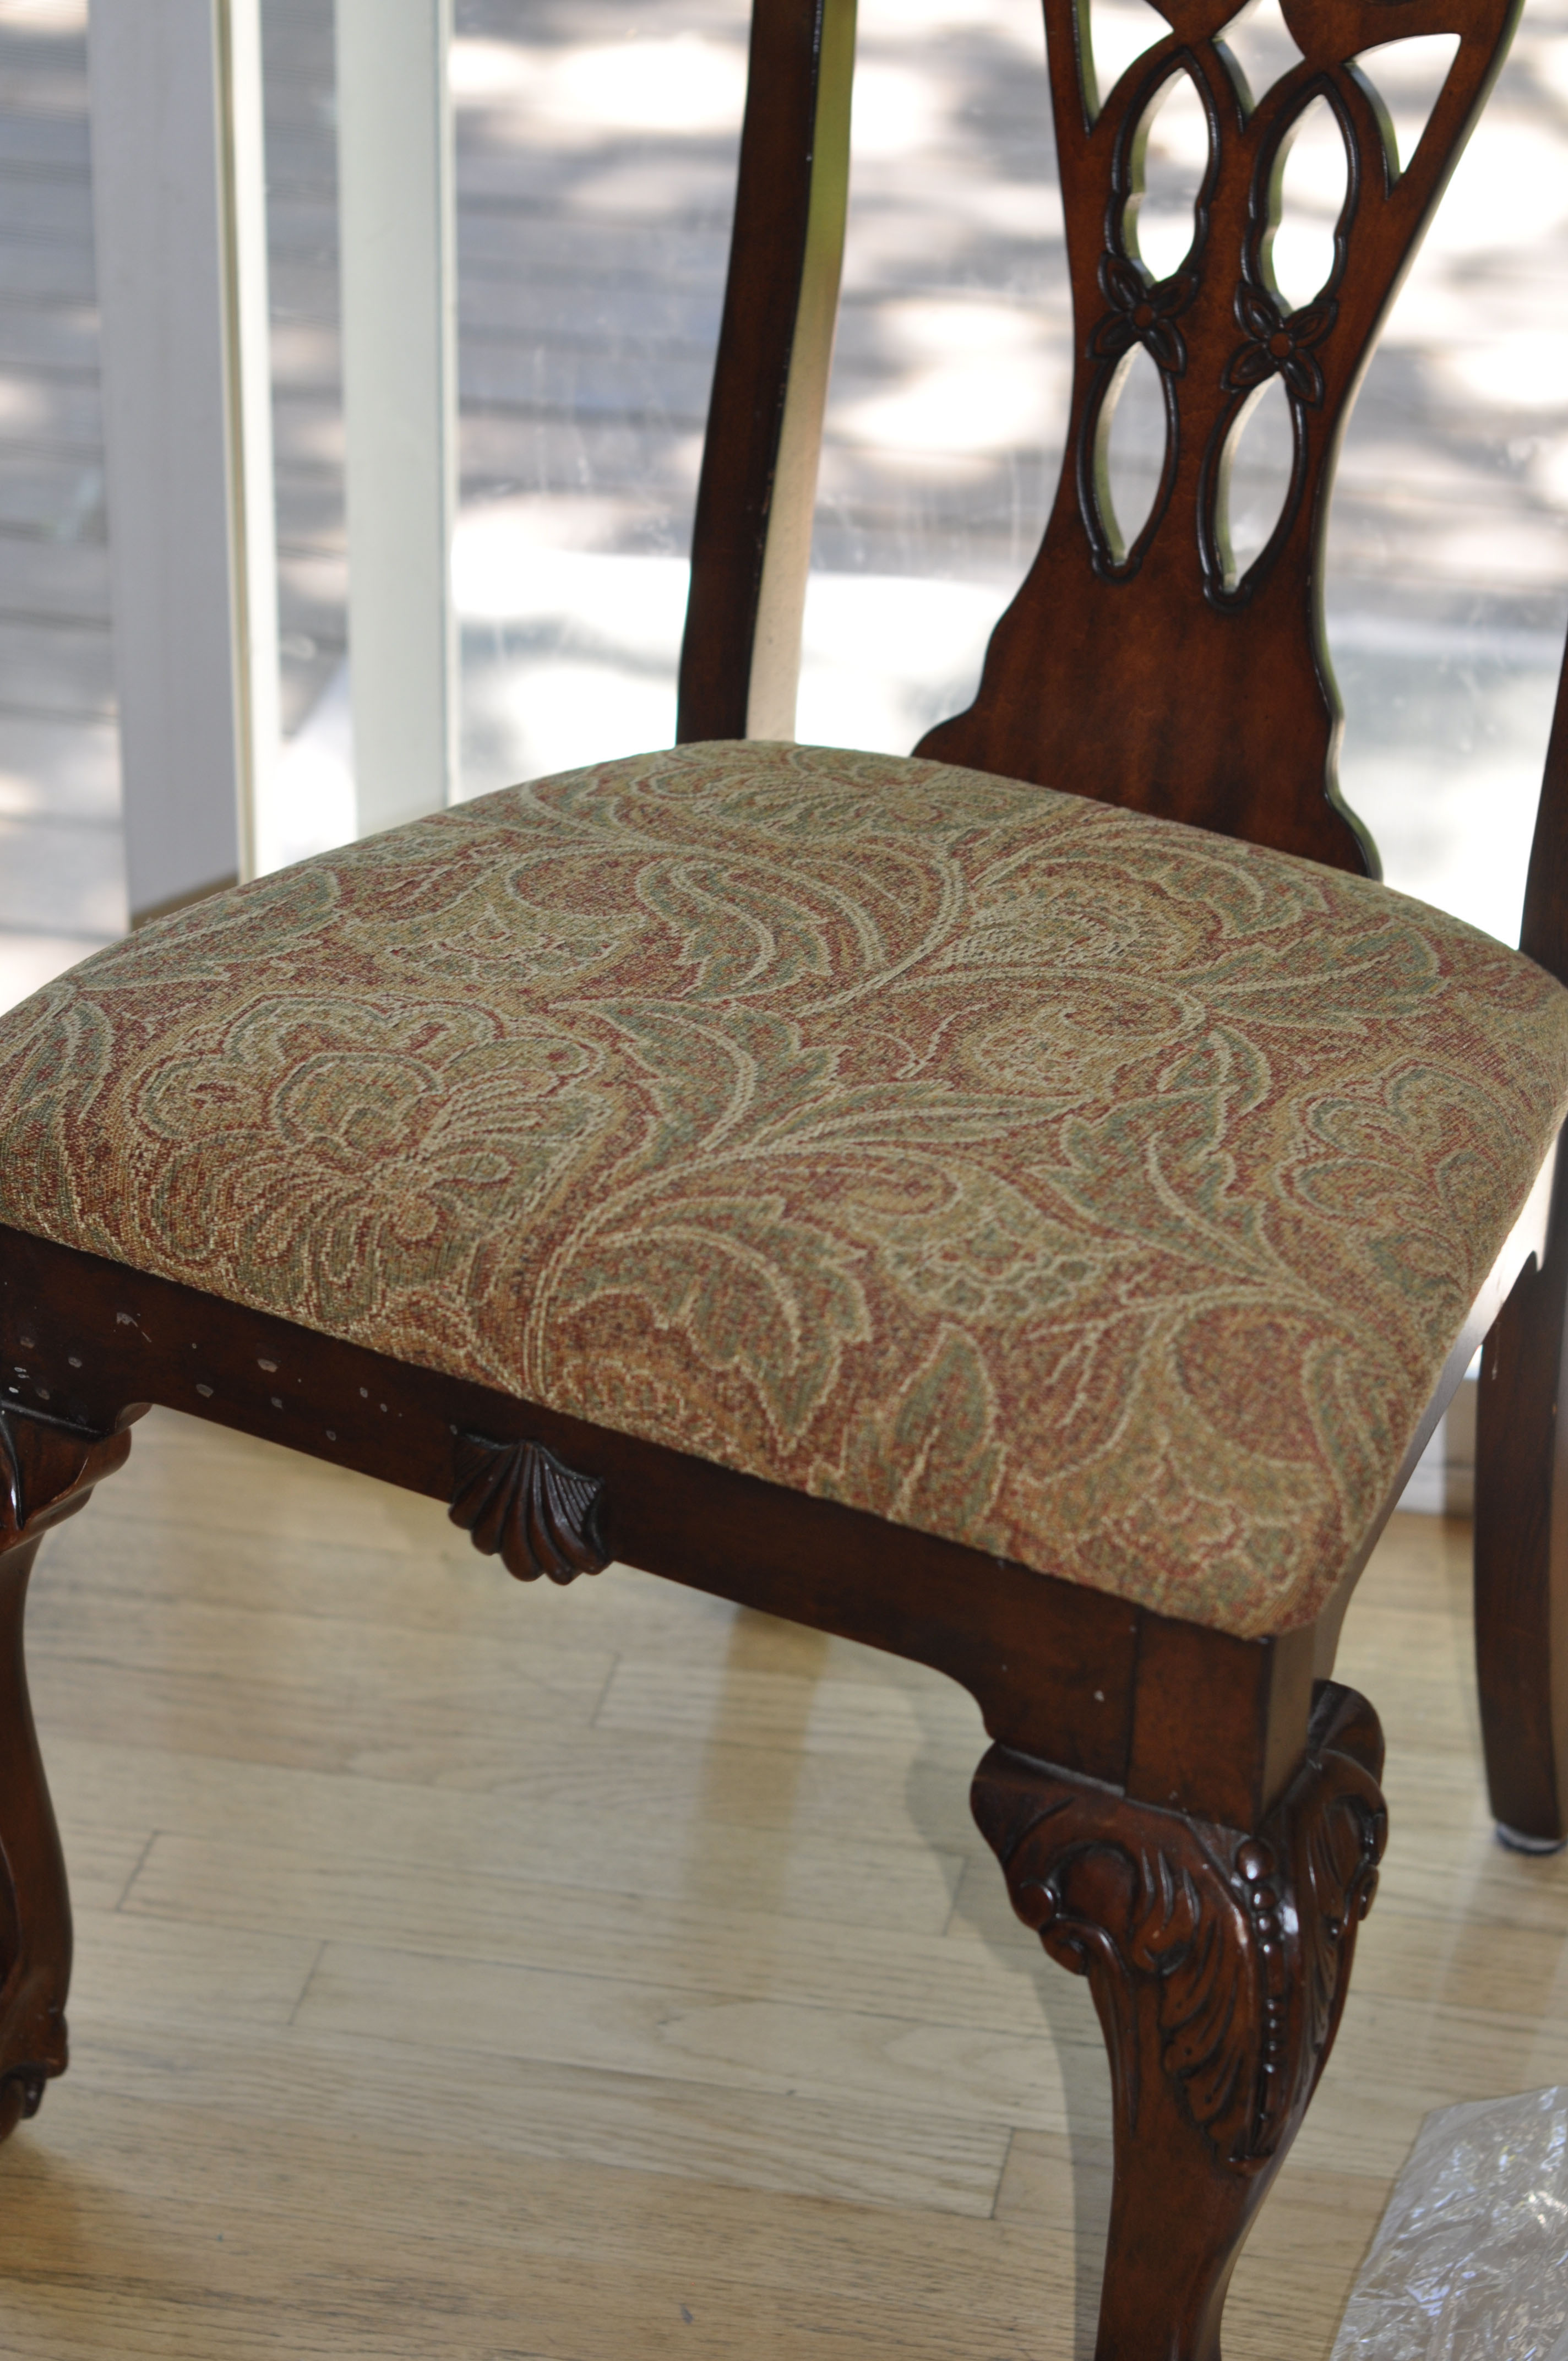 Stripped Cross Pattern Chair Covers Spandex Dining Room ...